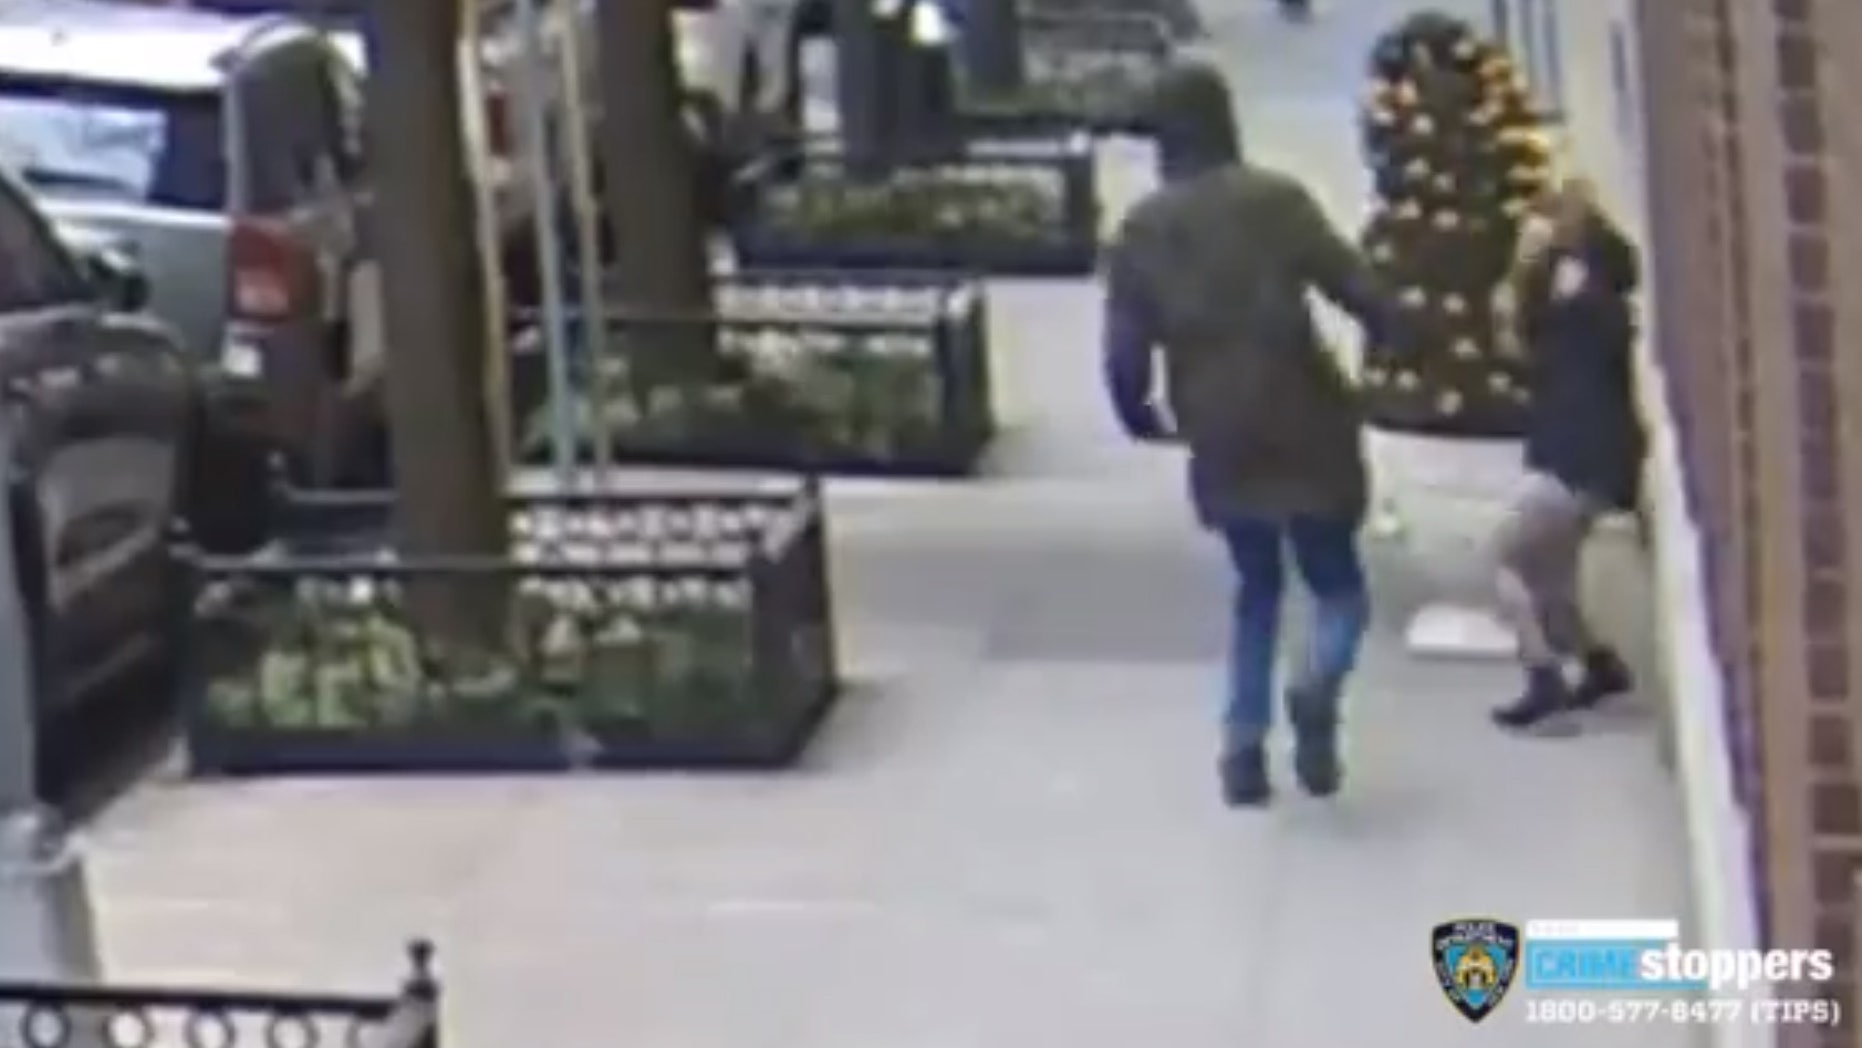 The suspect can be seen swinging at a 21-year-old woman who was on her phone. (NYPD CrimeStoppers)